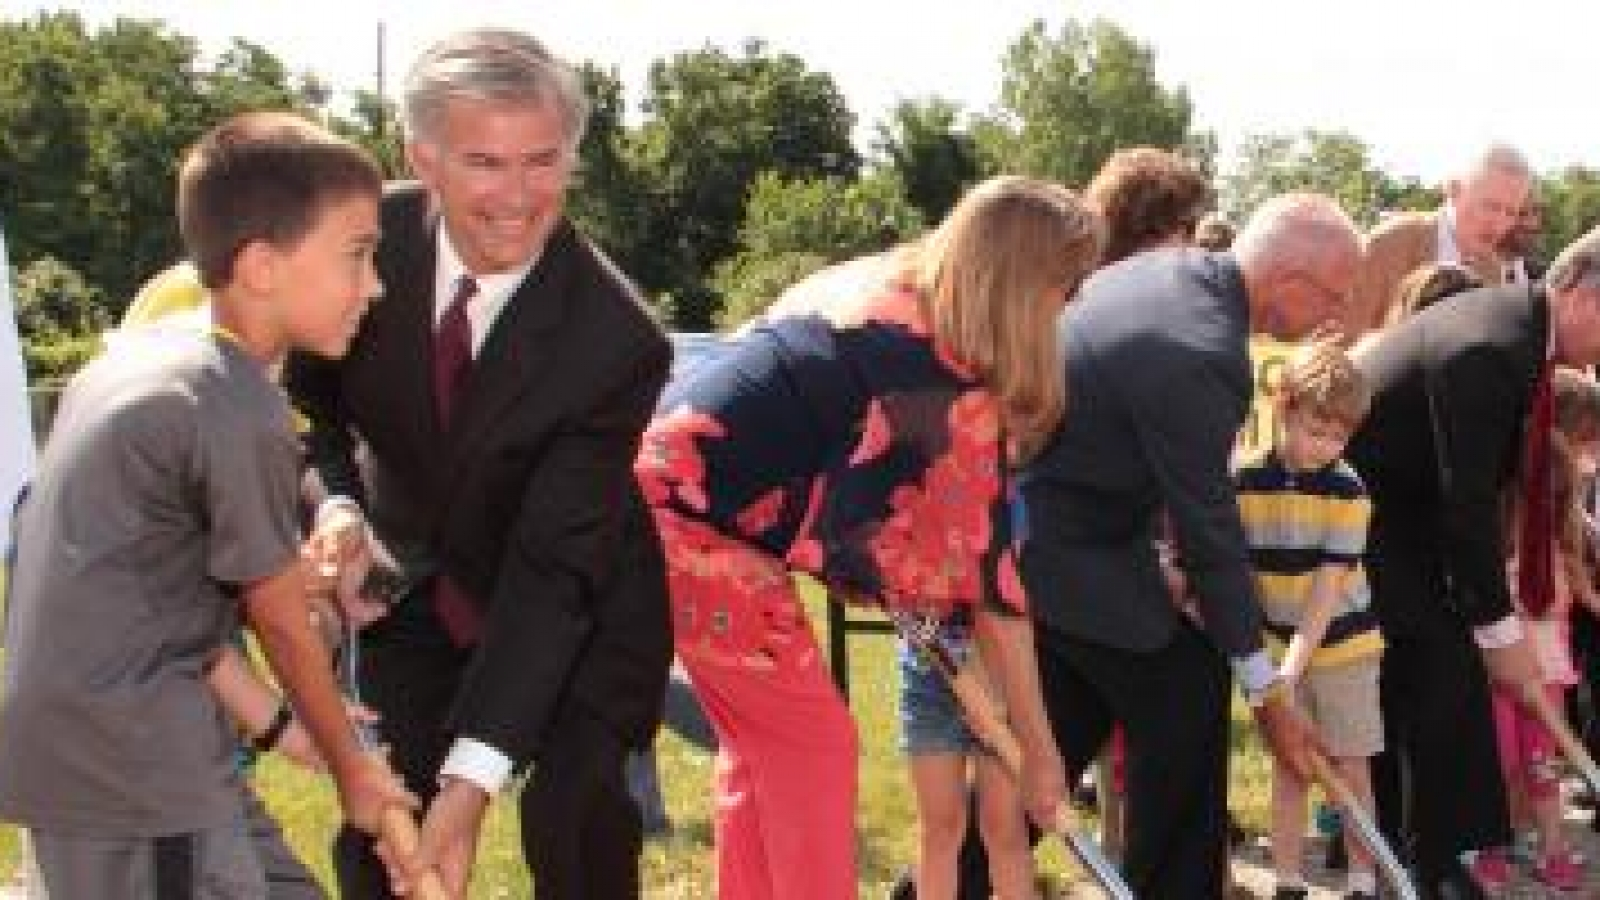 Community groundbreaking ceremony with a row of people with shovels in dirt